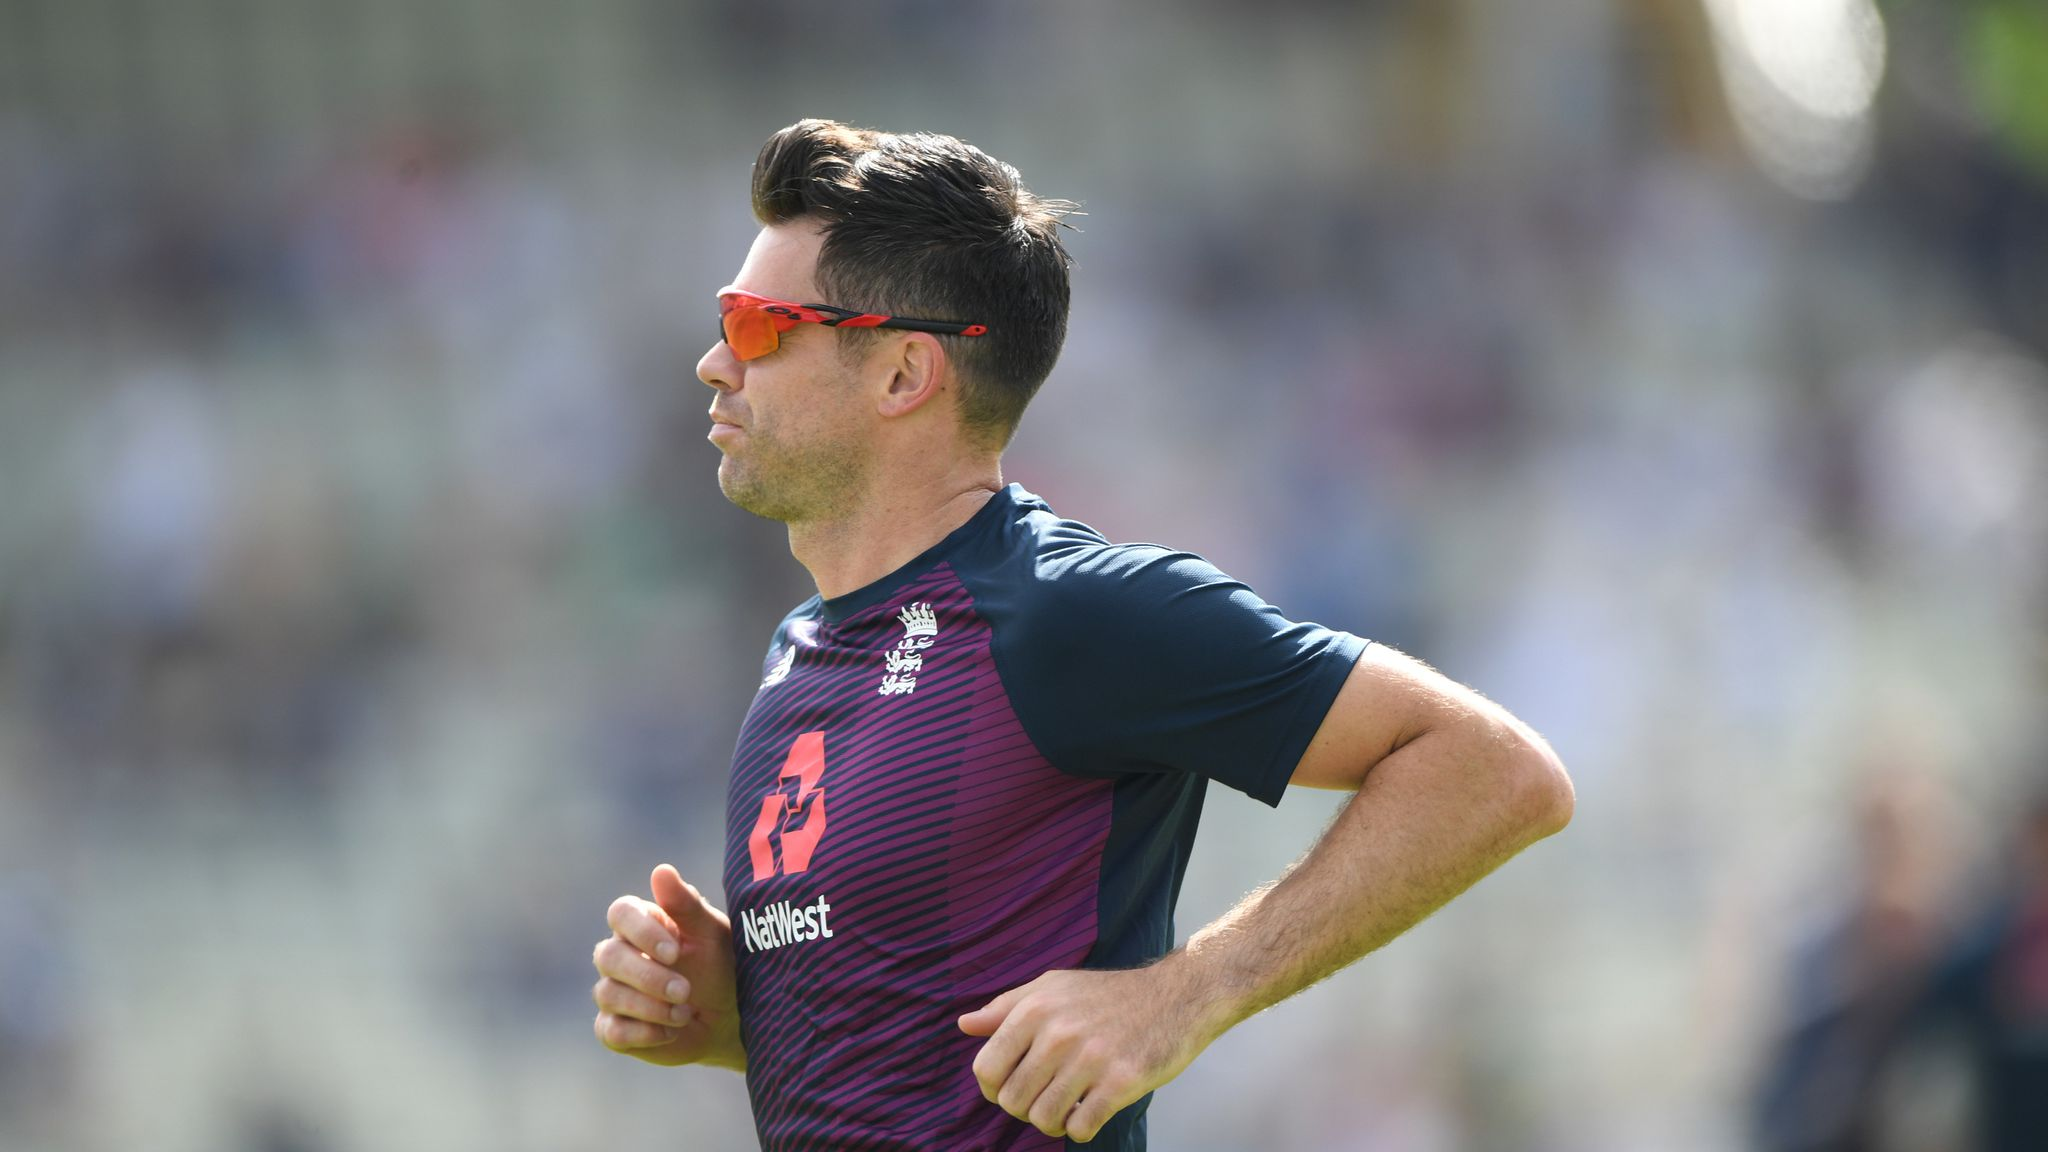 James Anderson and Stuart Broad remain key Test players for England, says Chris Silverwood